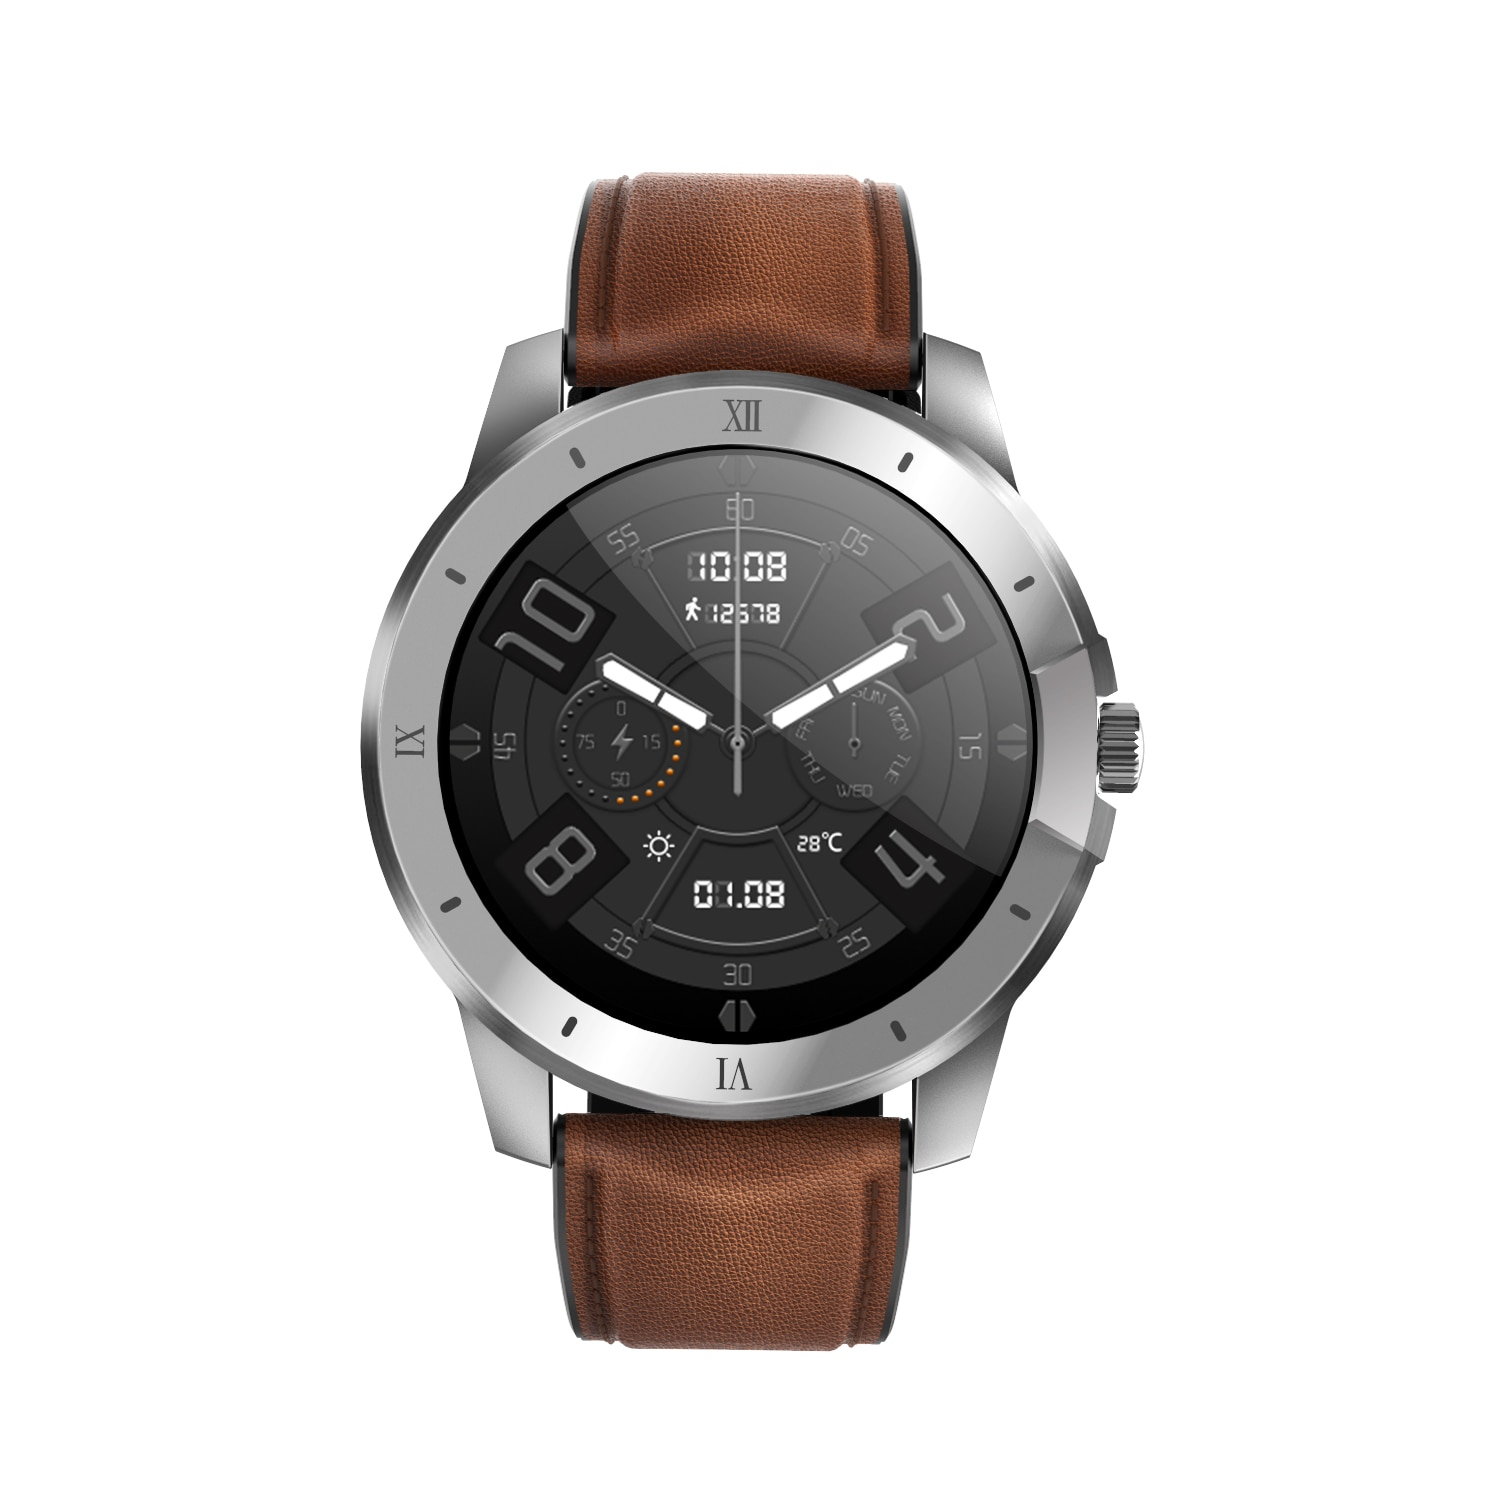 Fashion MX12 Men's And Women's Smart Watches, Local Bluetooth Music Playback, Call Information Synchronization, Multi-Sports